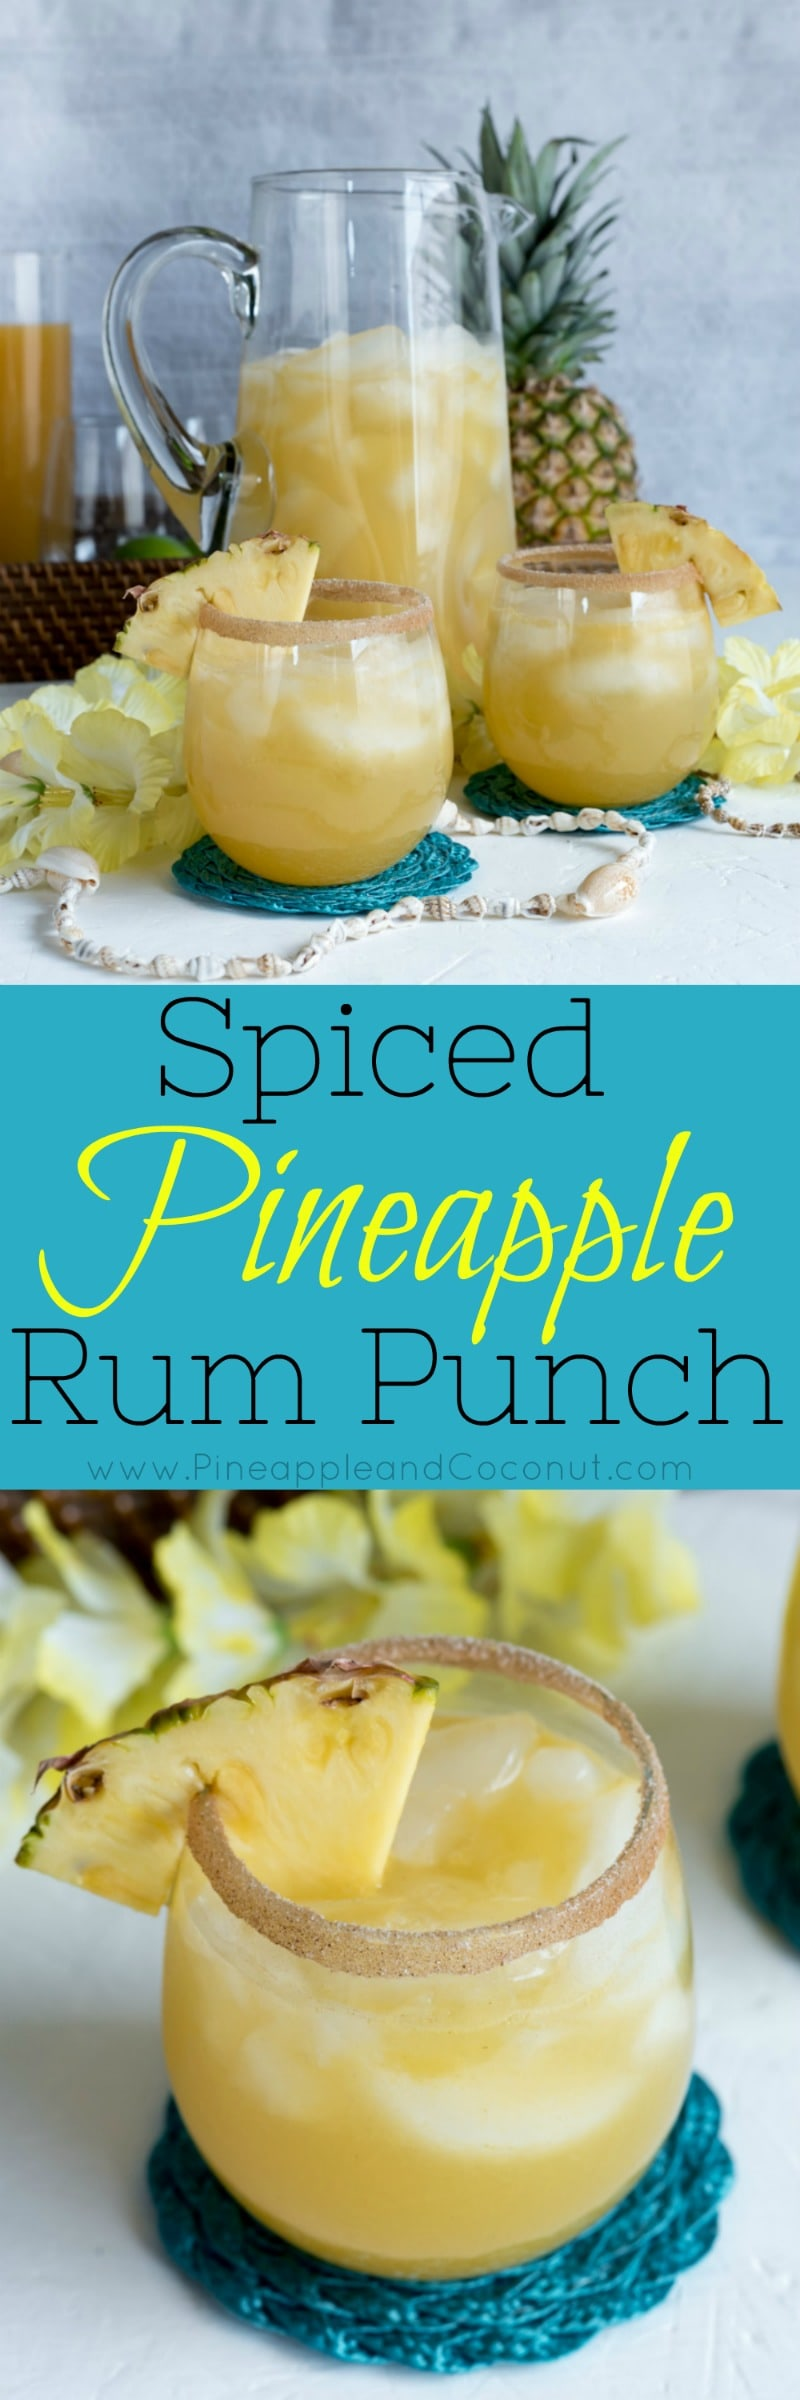 Spiced Pineapple Rum Punch www.pineappleandcoconut.com